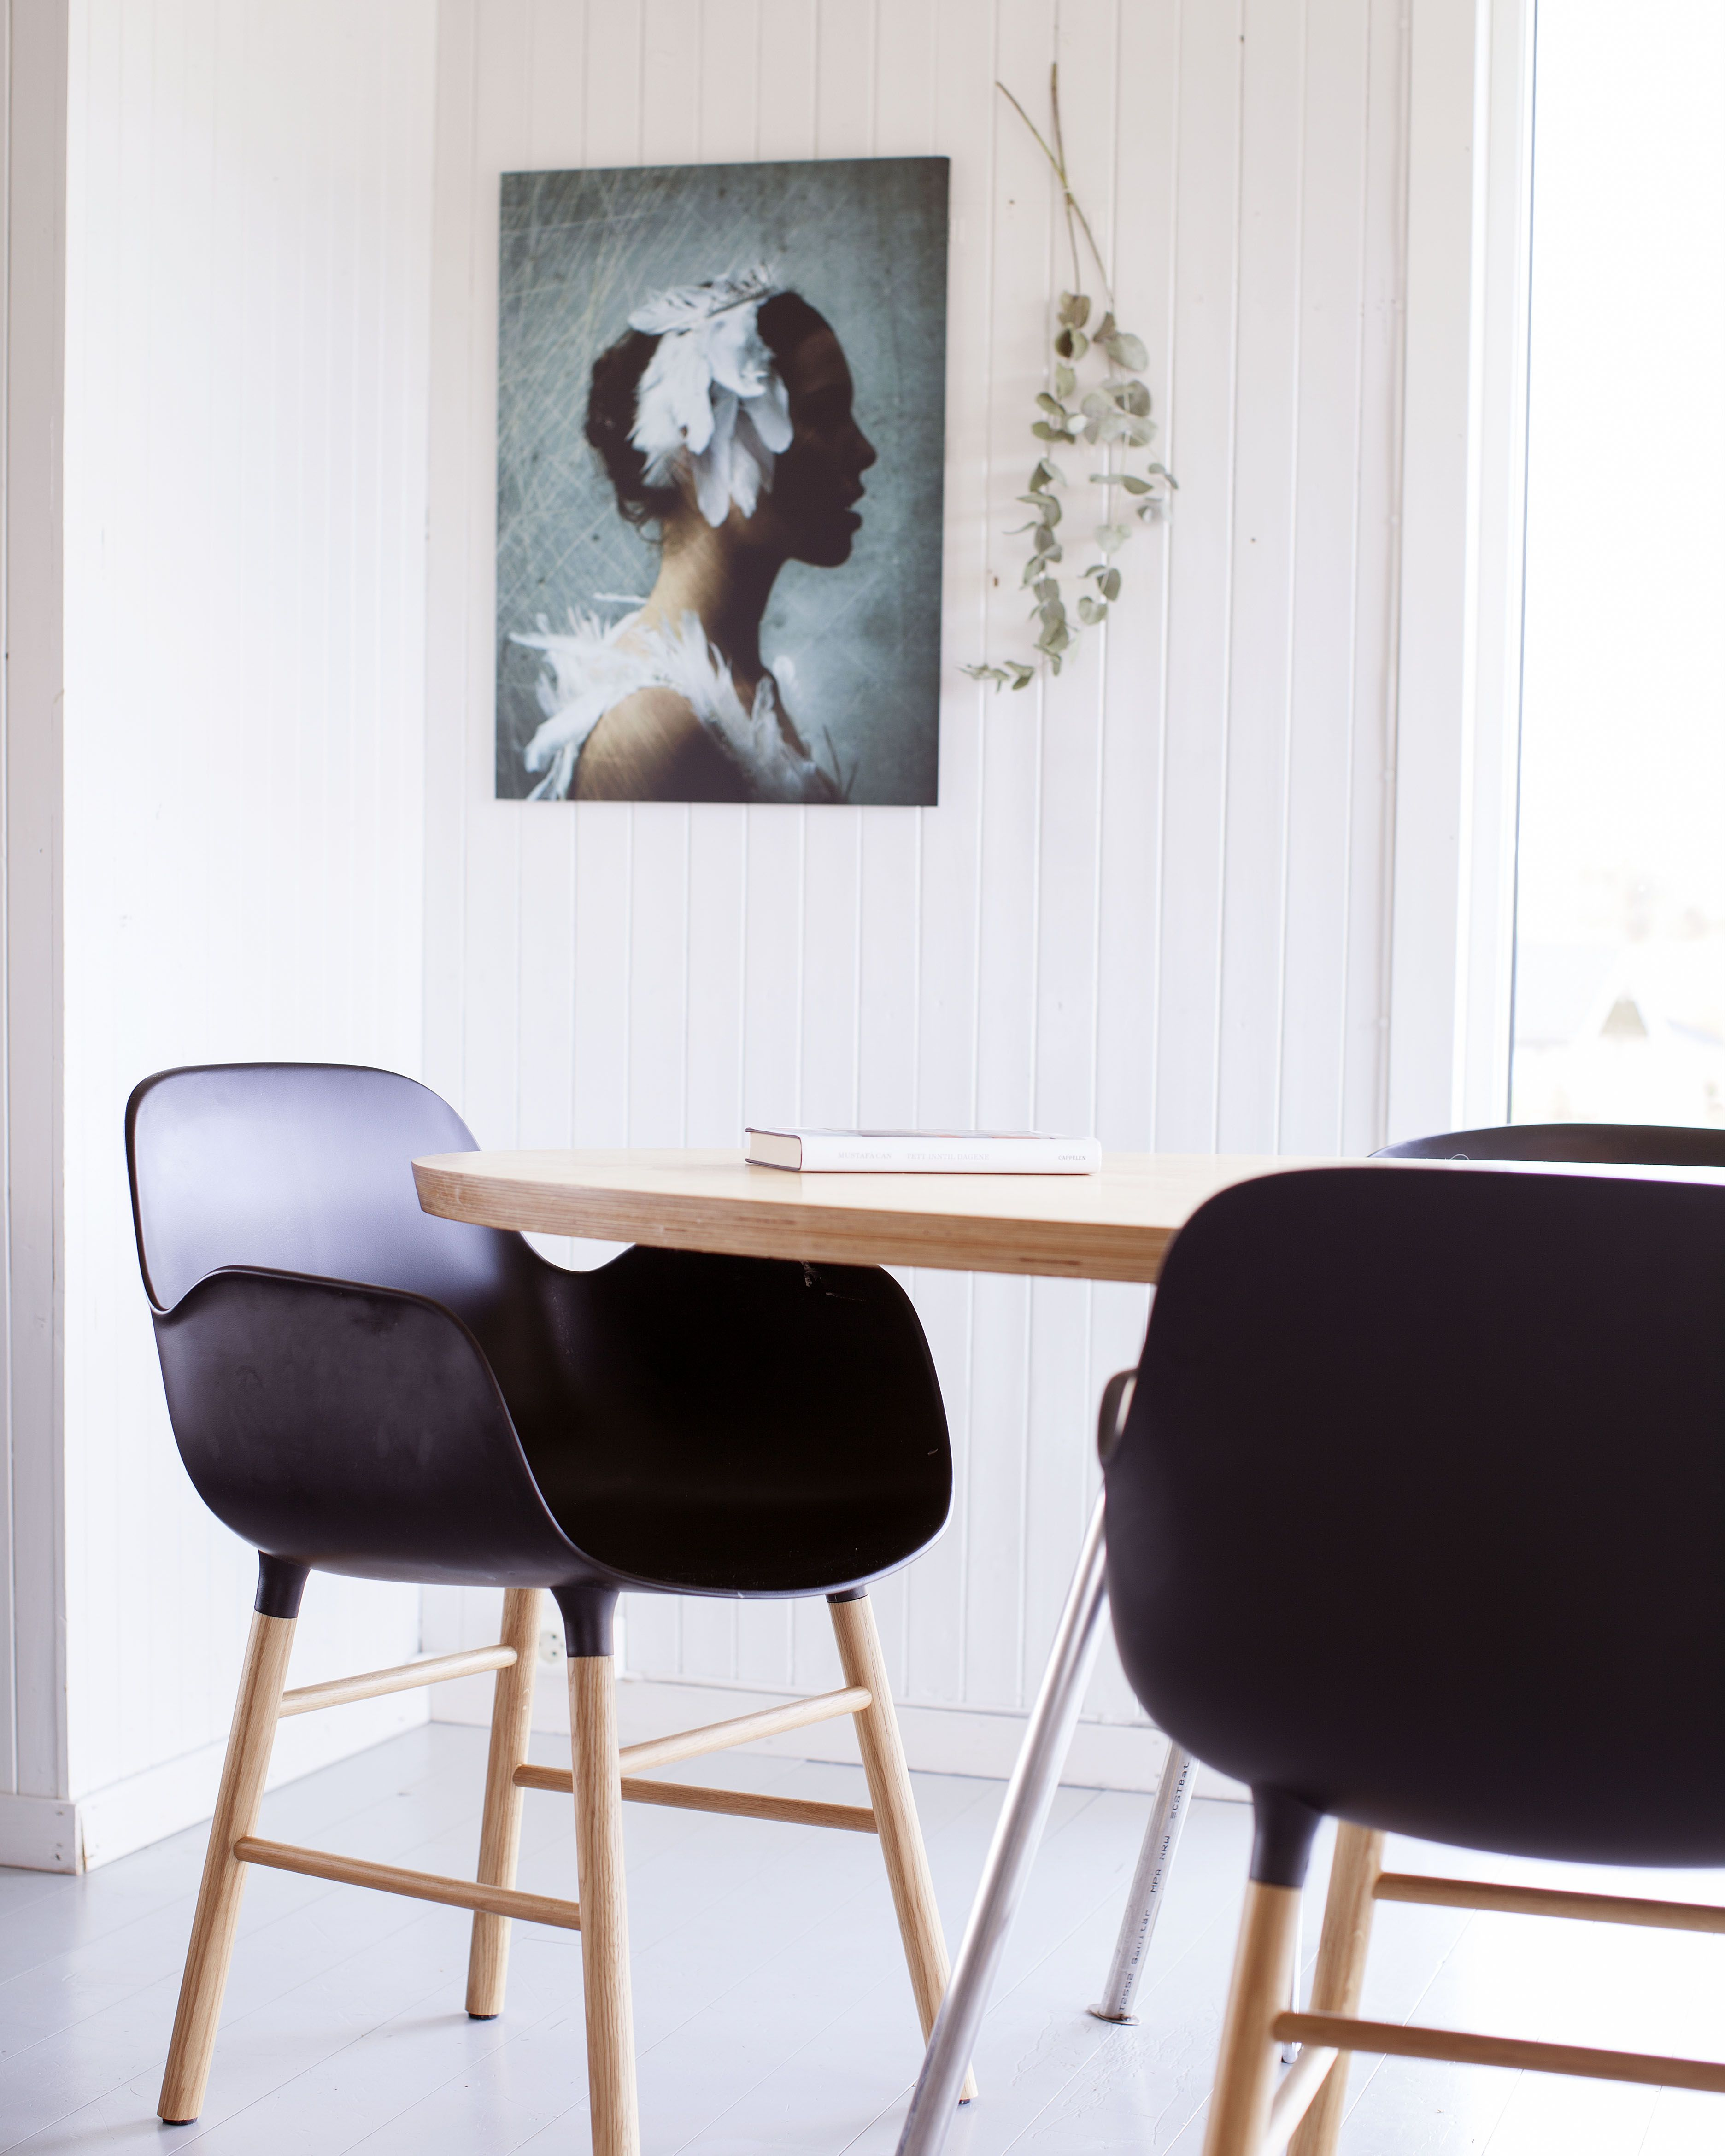 Our Dining Room With Norman Copenhagen Chairs, Homemade Table And Image  Troopers Art Work On Aluminum.